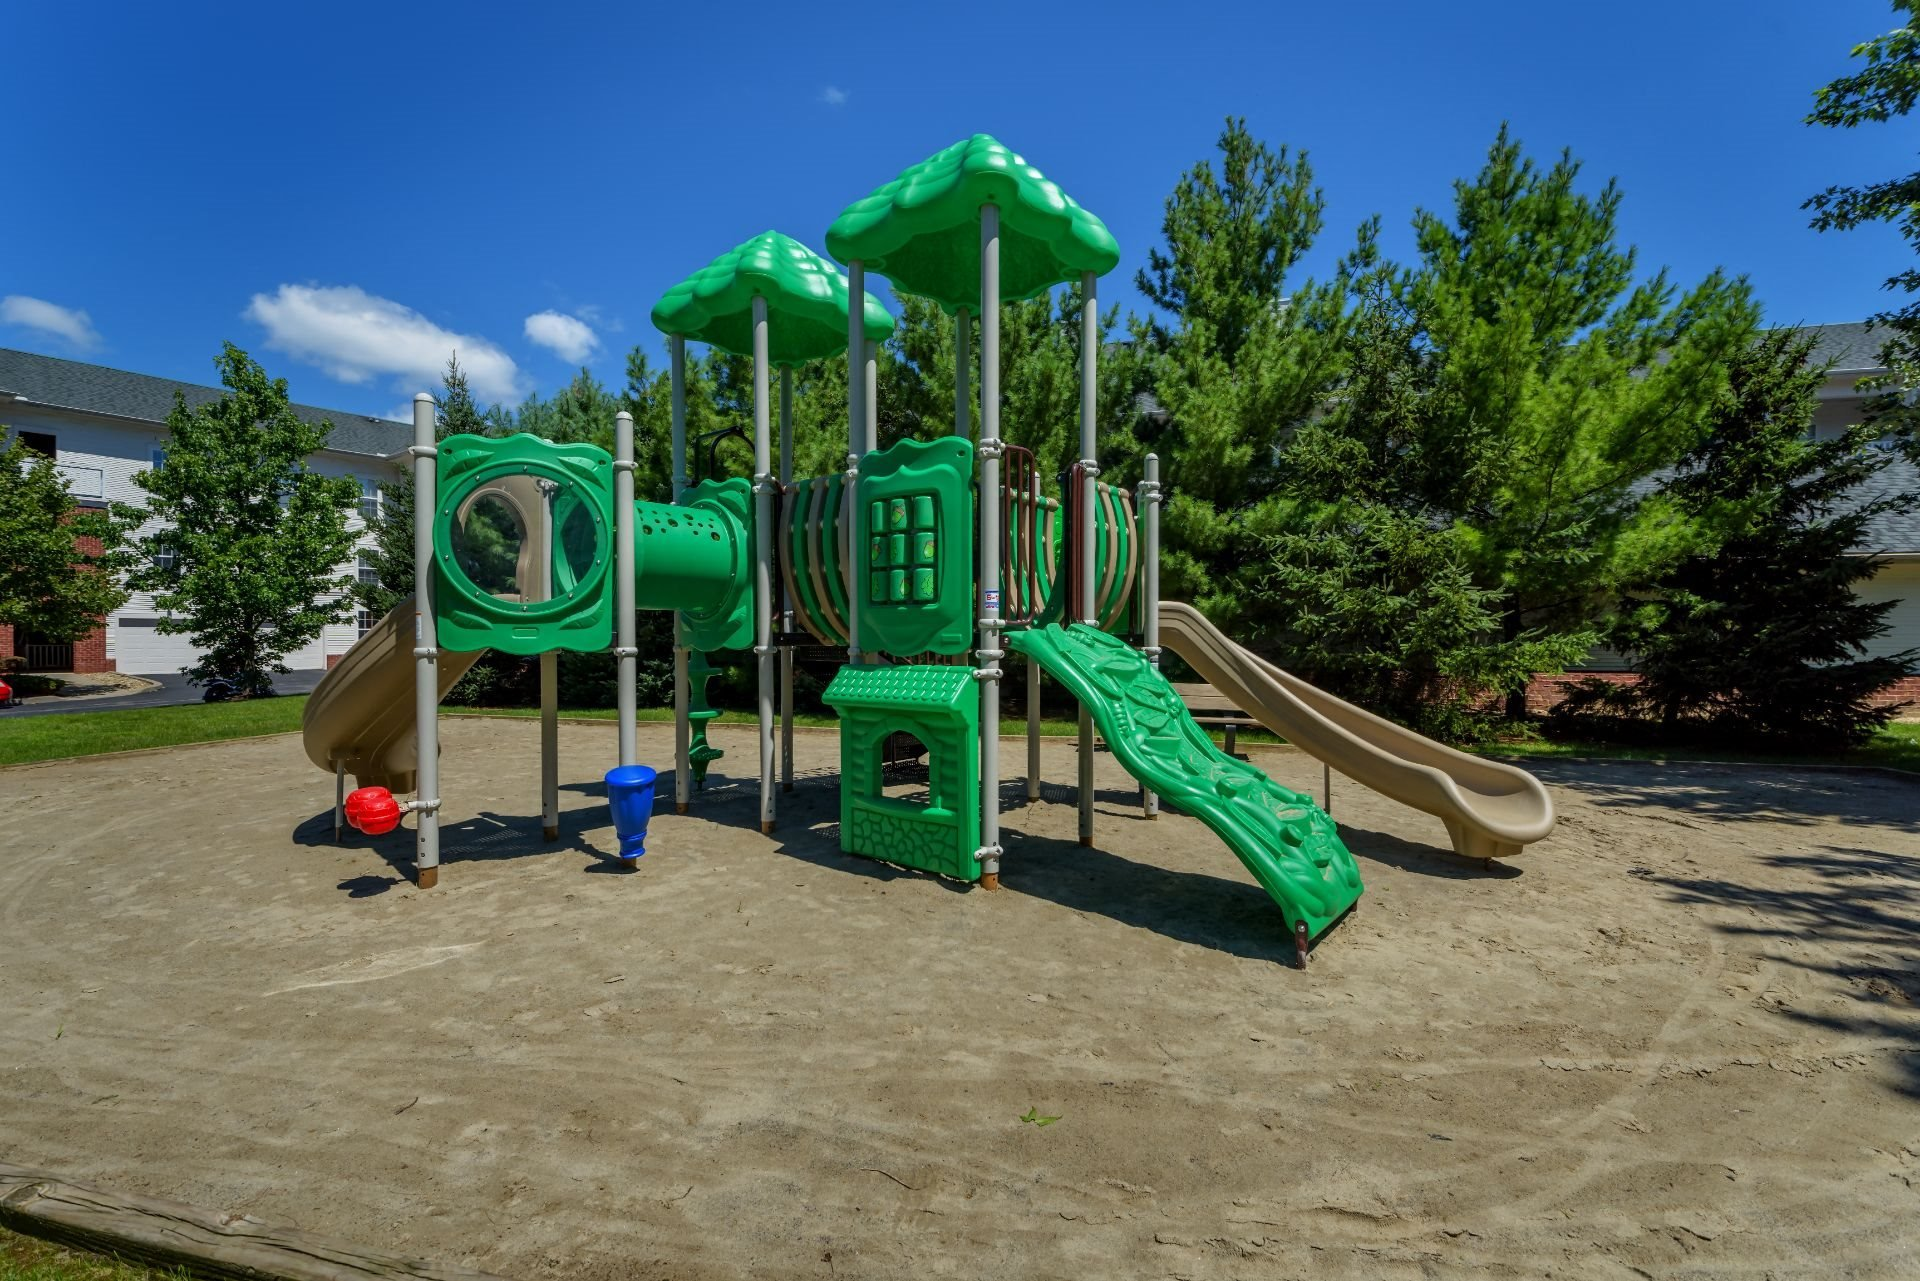 Playground Christopher Wren Apartments, 501 Christopher Wren Drive, Wexford, PA 15090